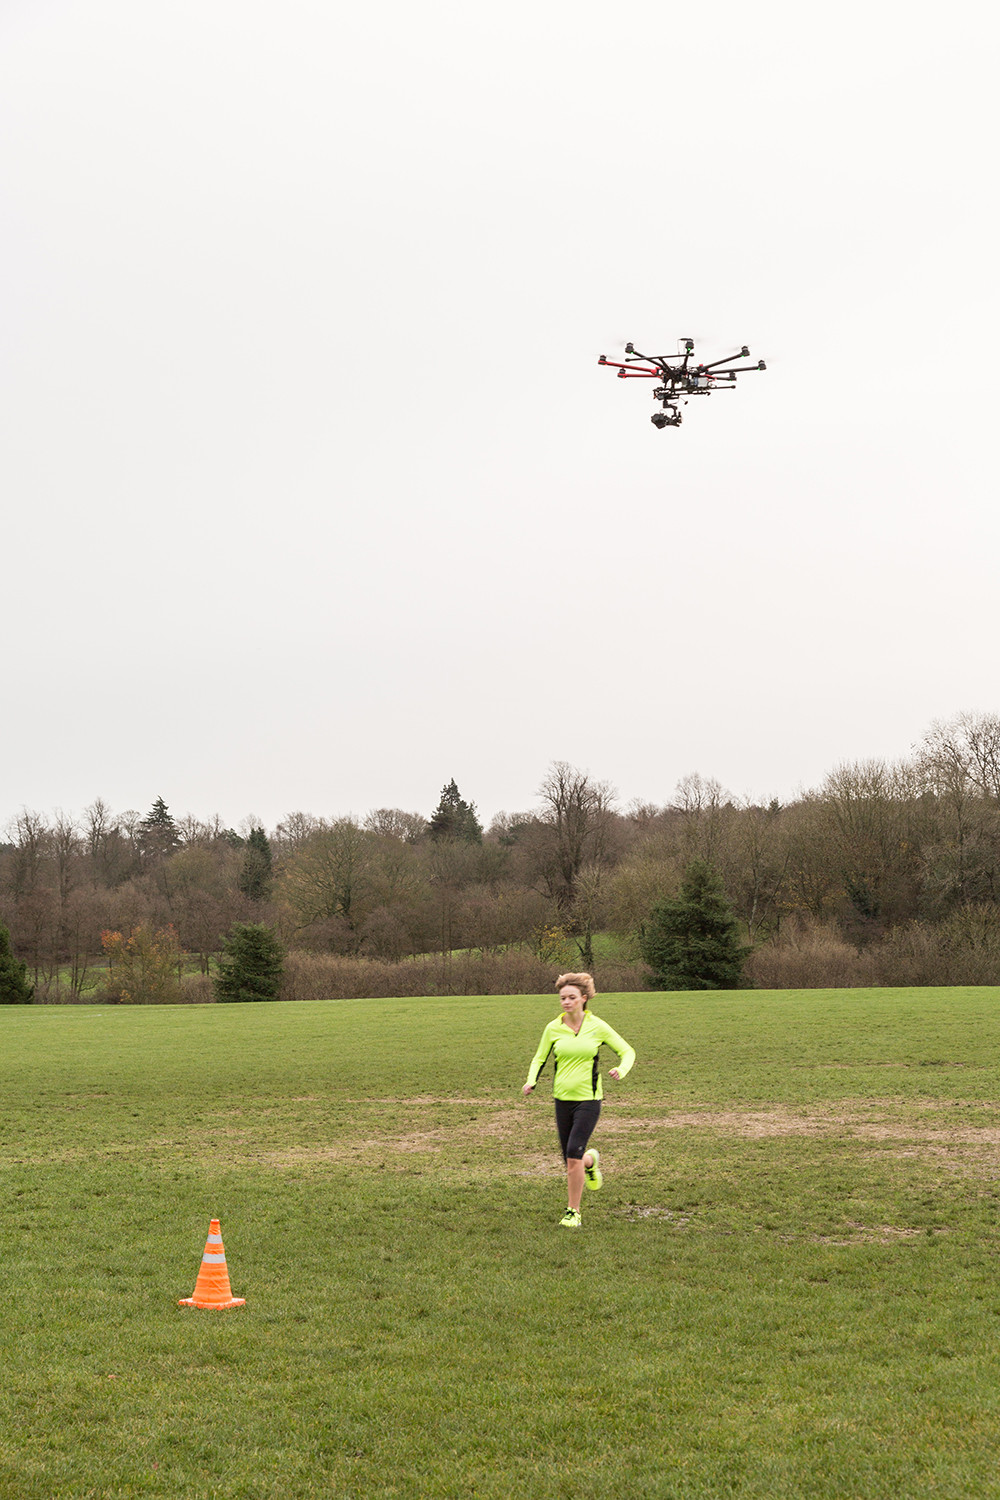 Filming with drone, overhead athletic running shot